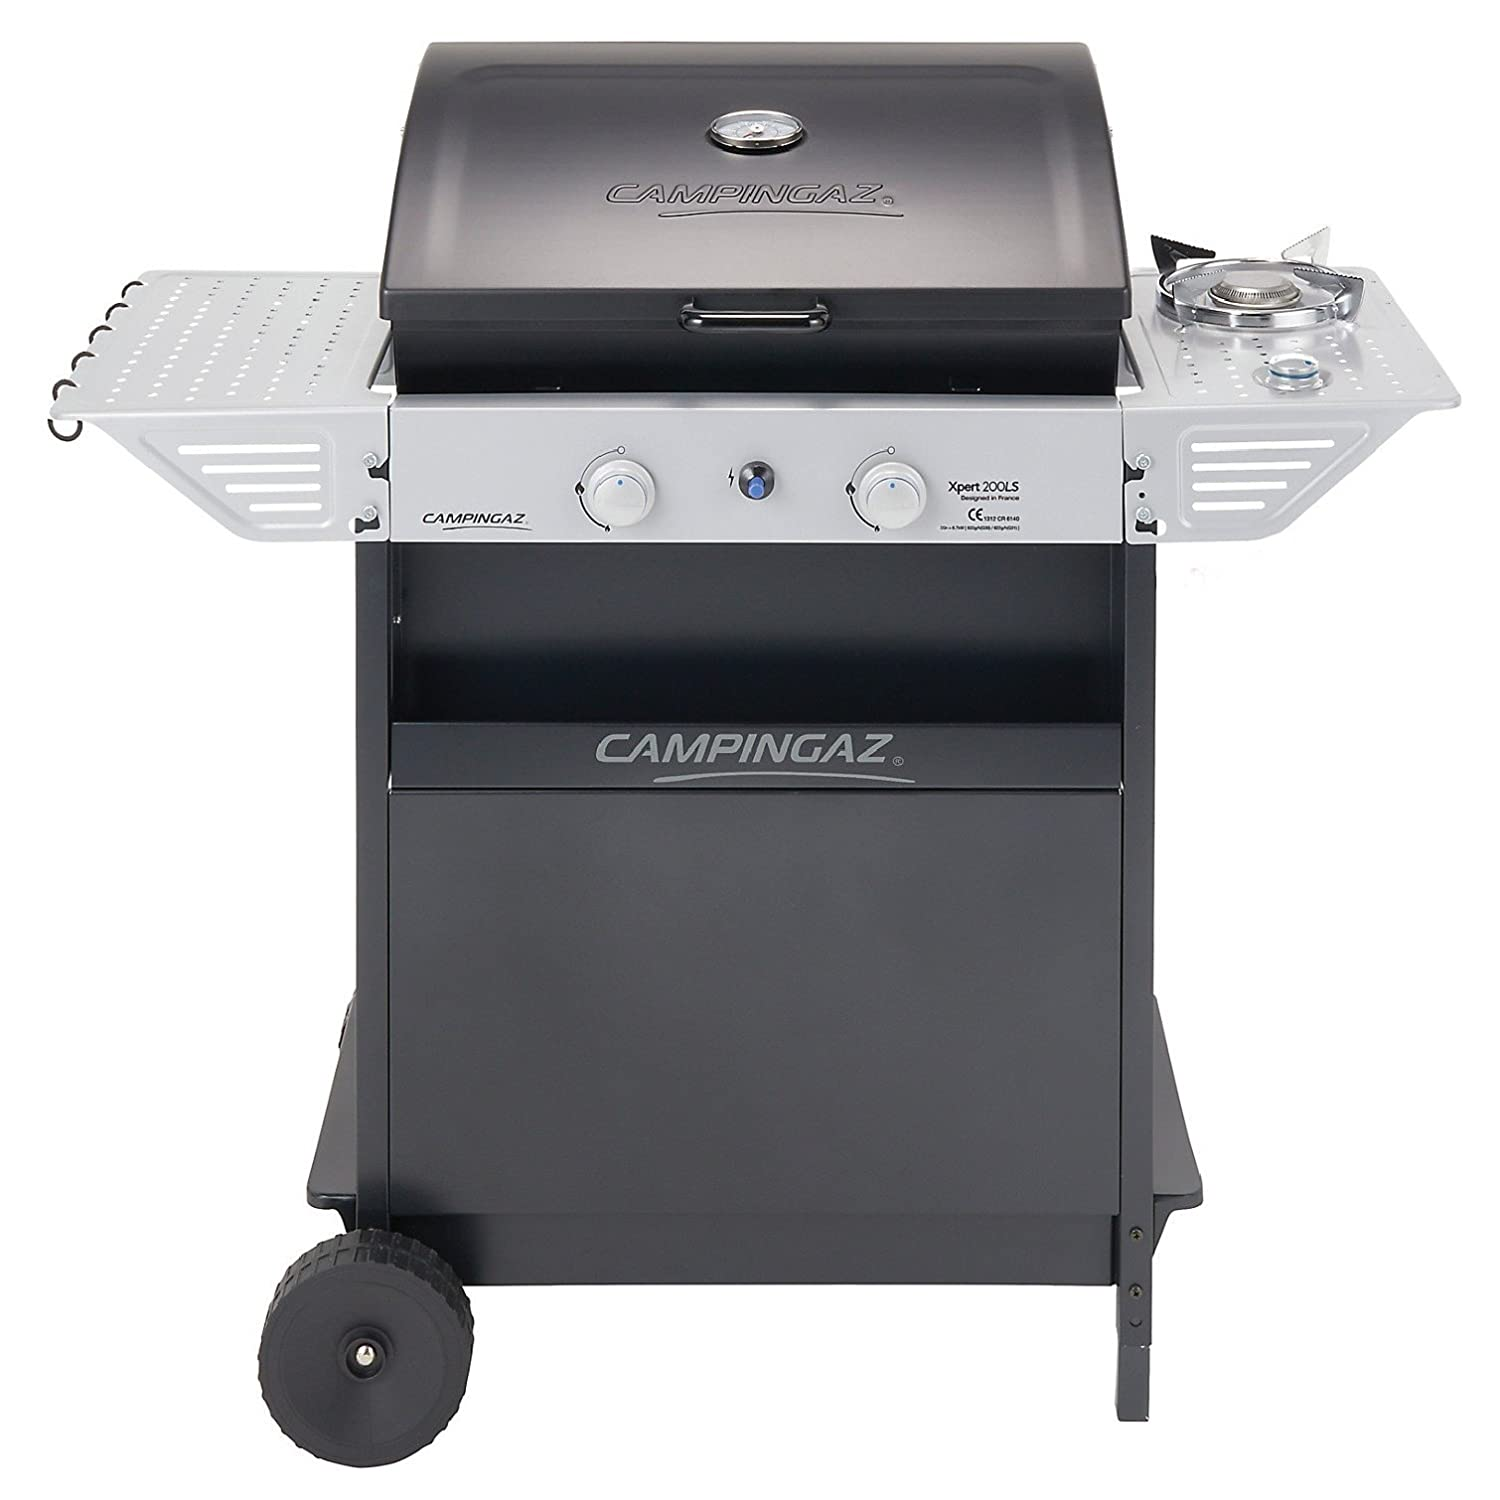 Campingaz Gas BBQ Xpert 200 LS, Compact 2+1 Burner Gas Barbecue Grill, 2 Stamped Steel Grids, Side Table and Steel BBQ Trolley 3000004833